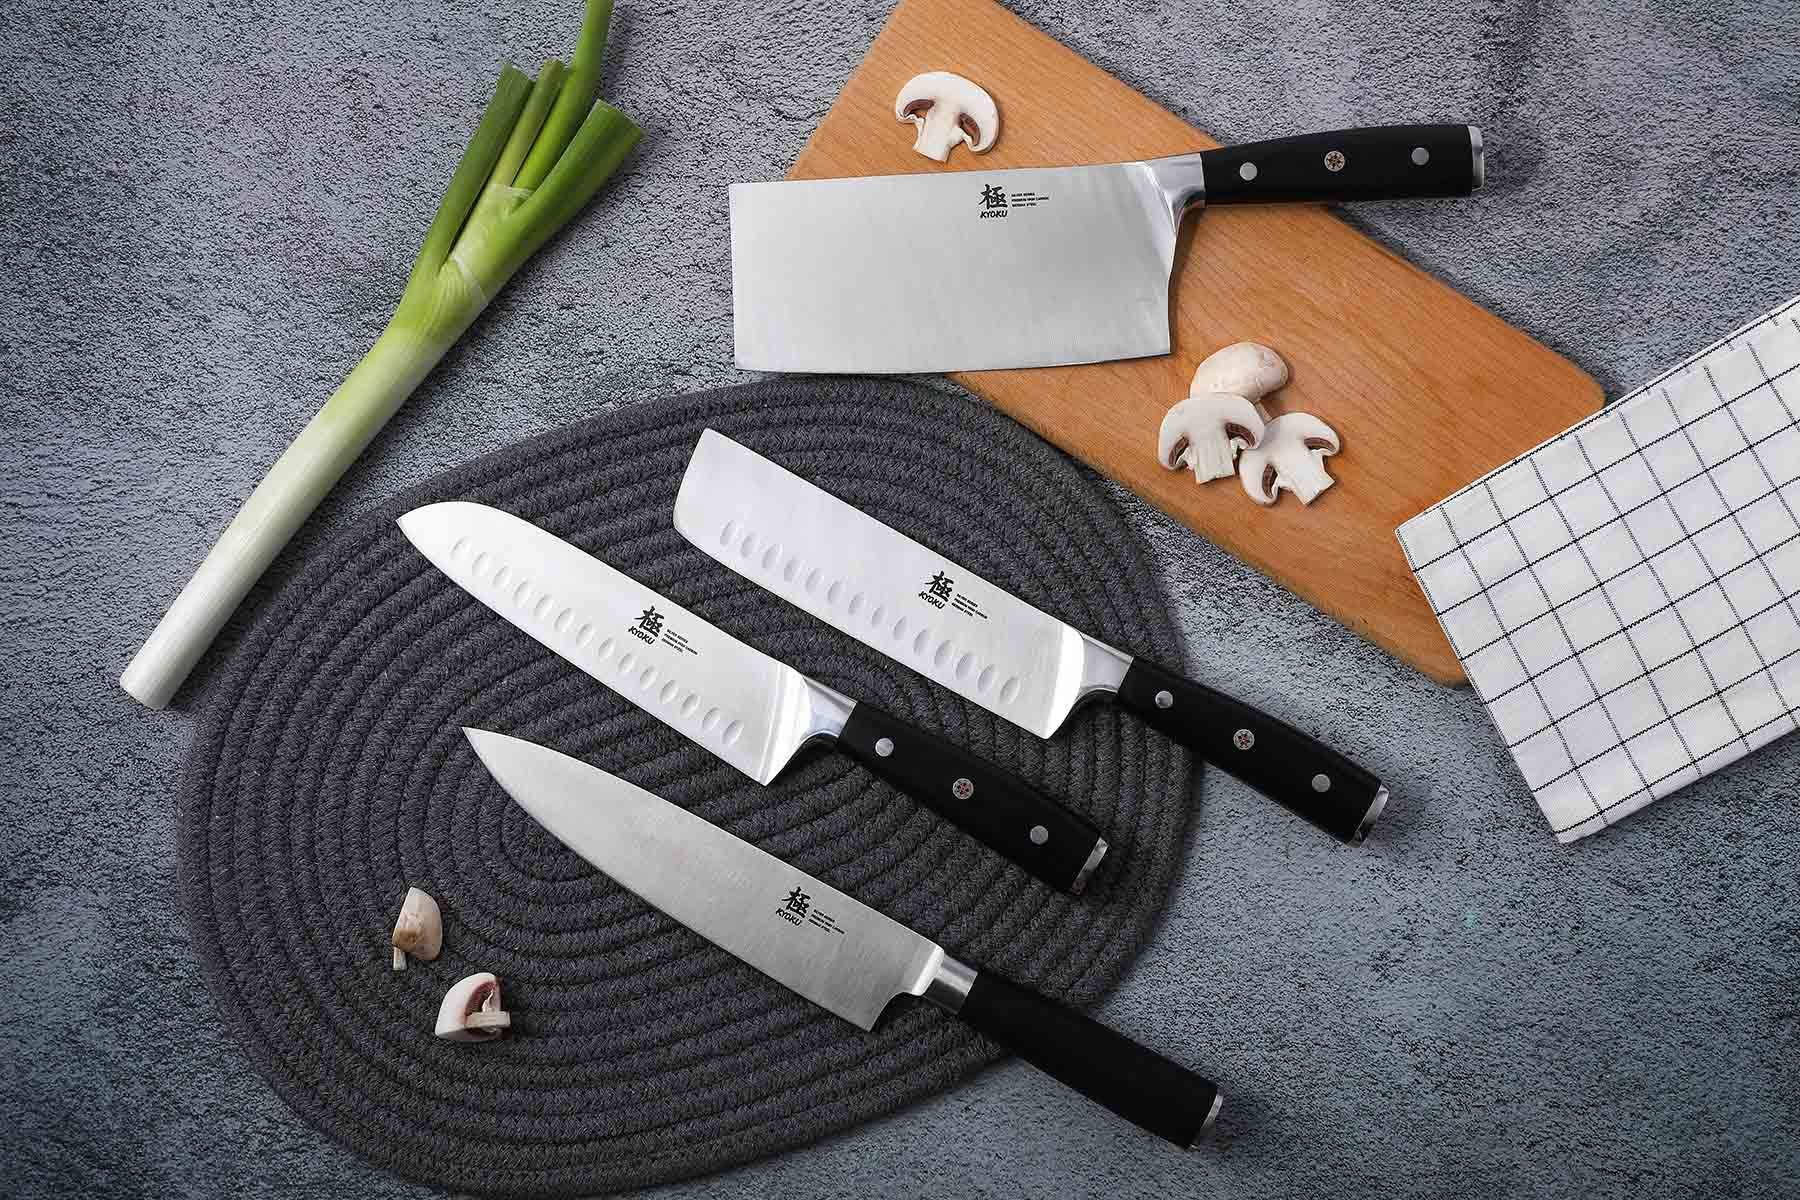 KYOKU Samurai Series - Santoku Chef Knife 7'' with Sheath & Case - Full Tang - Japanese High Carbon Steel - Pakkawood Handle with Mosaic Pin by KYOKU (Image #3)